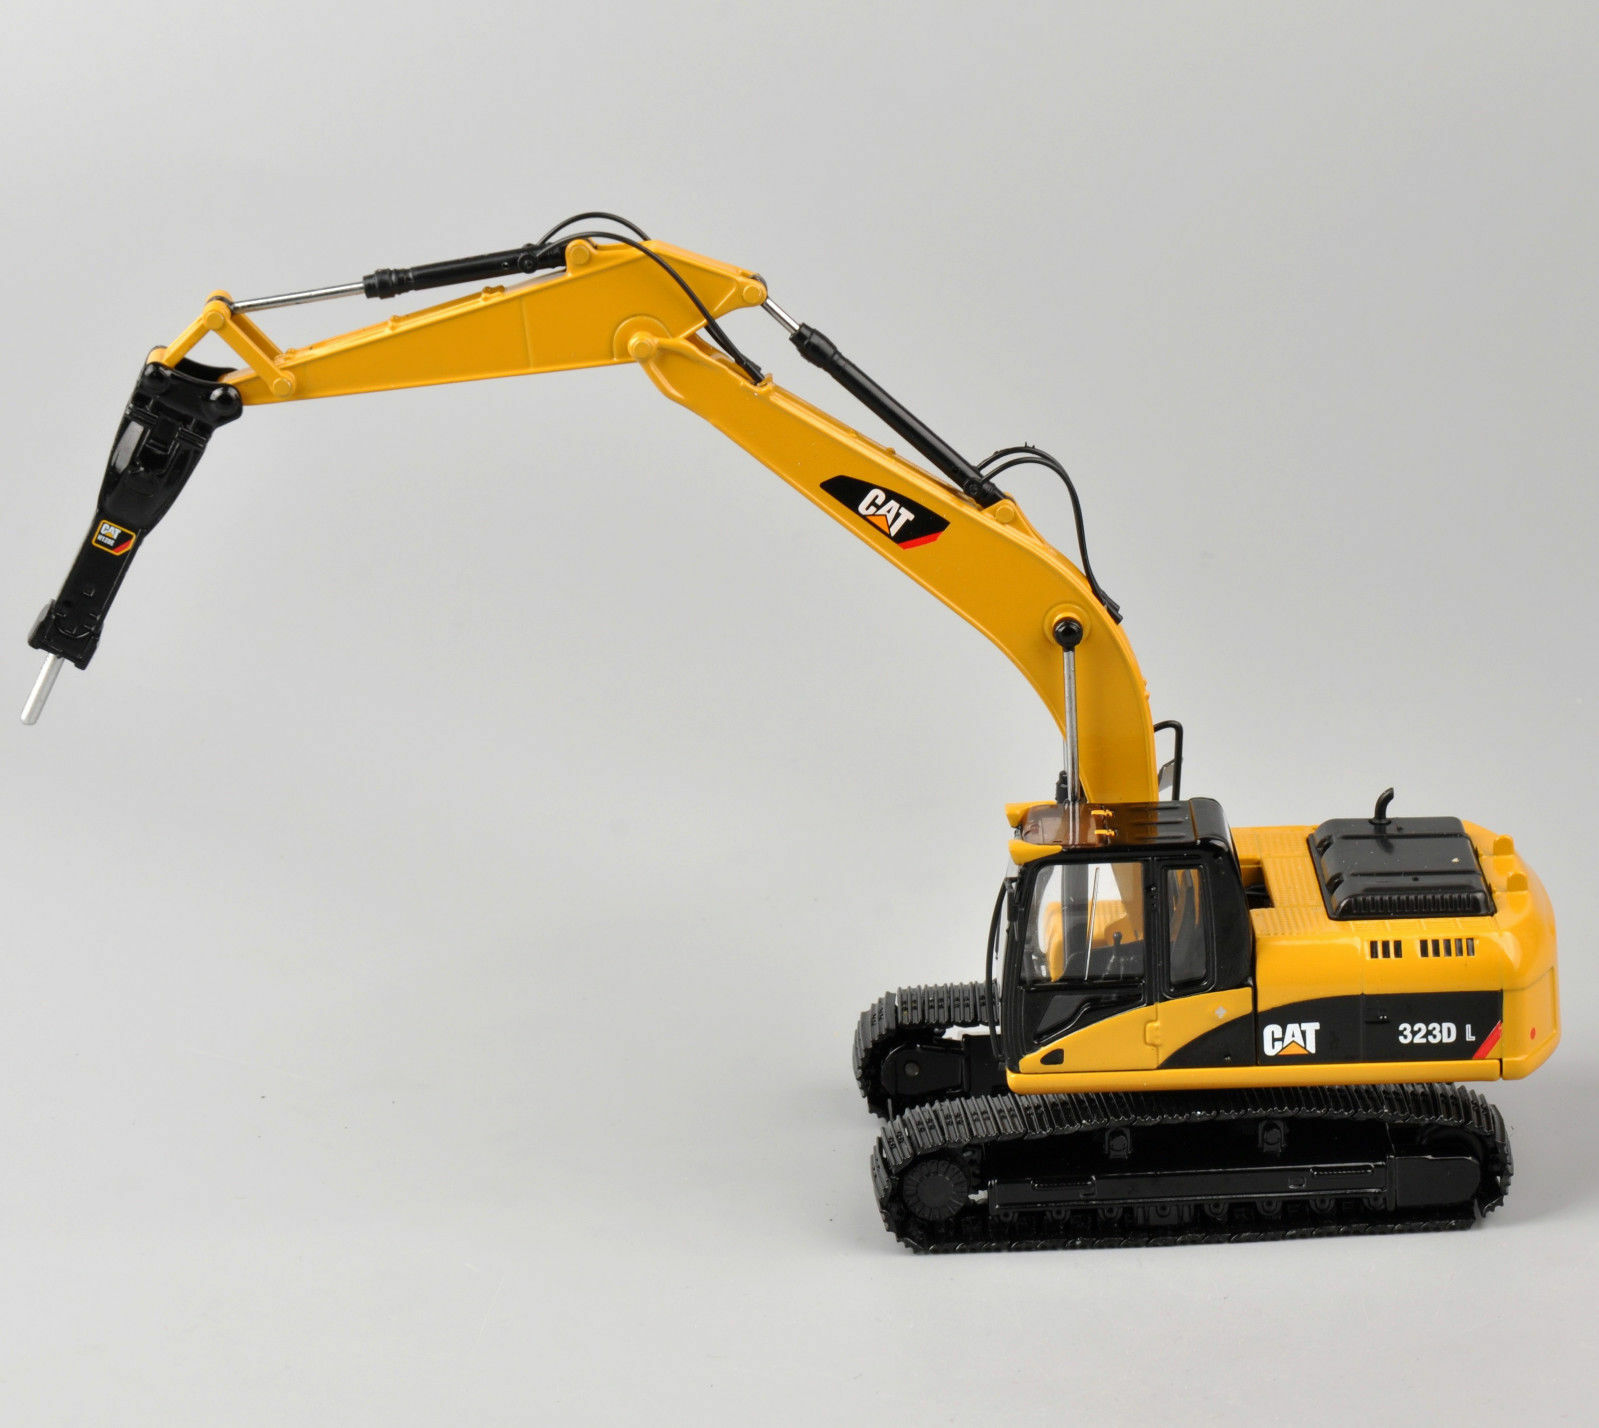 Norscot Caterpillar Cat 323D L Excavators With H120E Hydraulic Hammer Metal Tracks 1/50 Scale Diecast Model